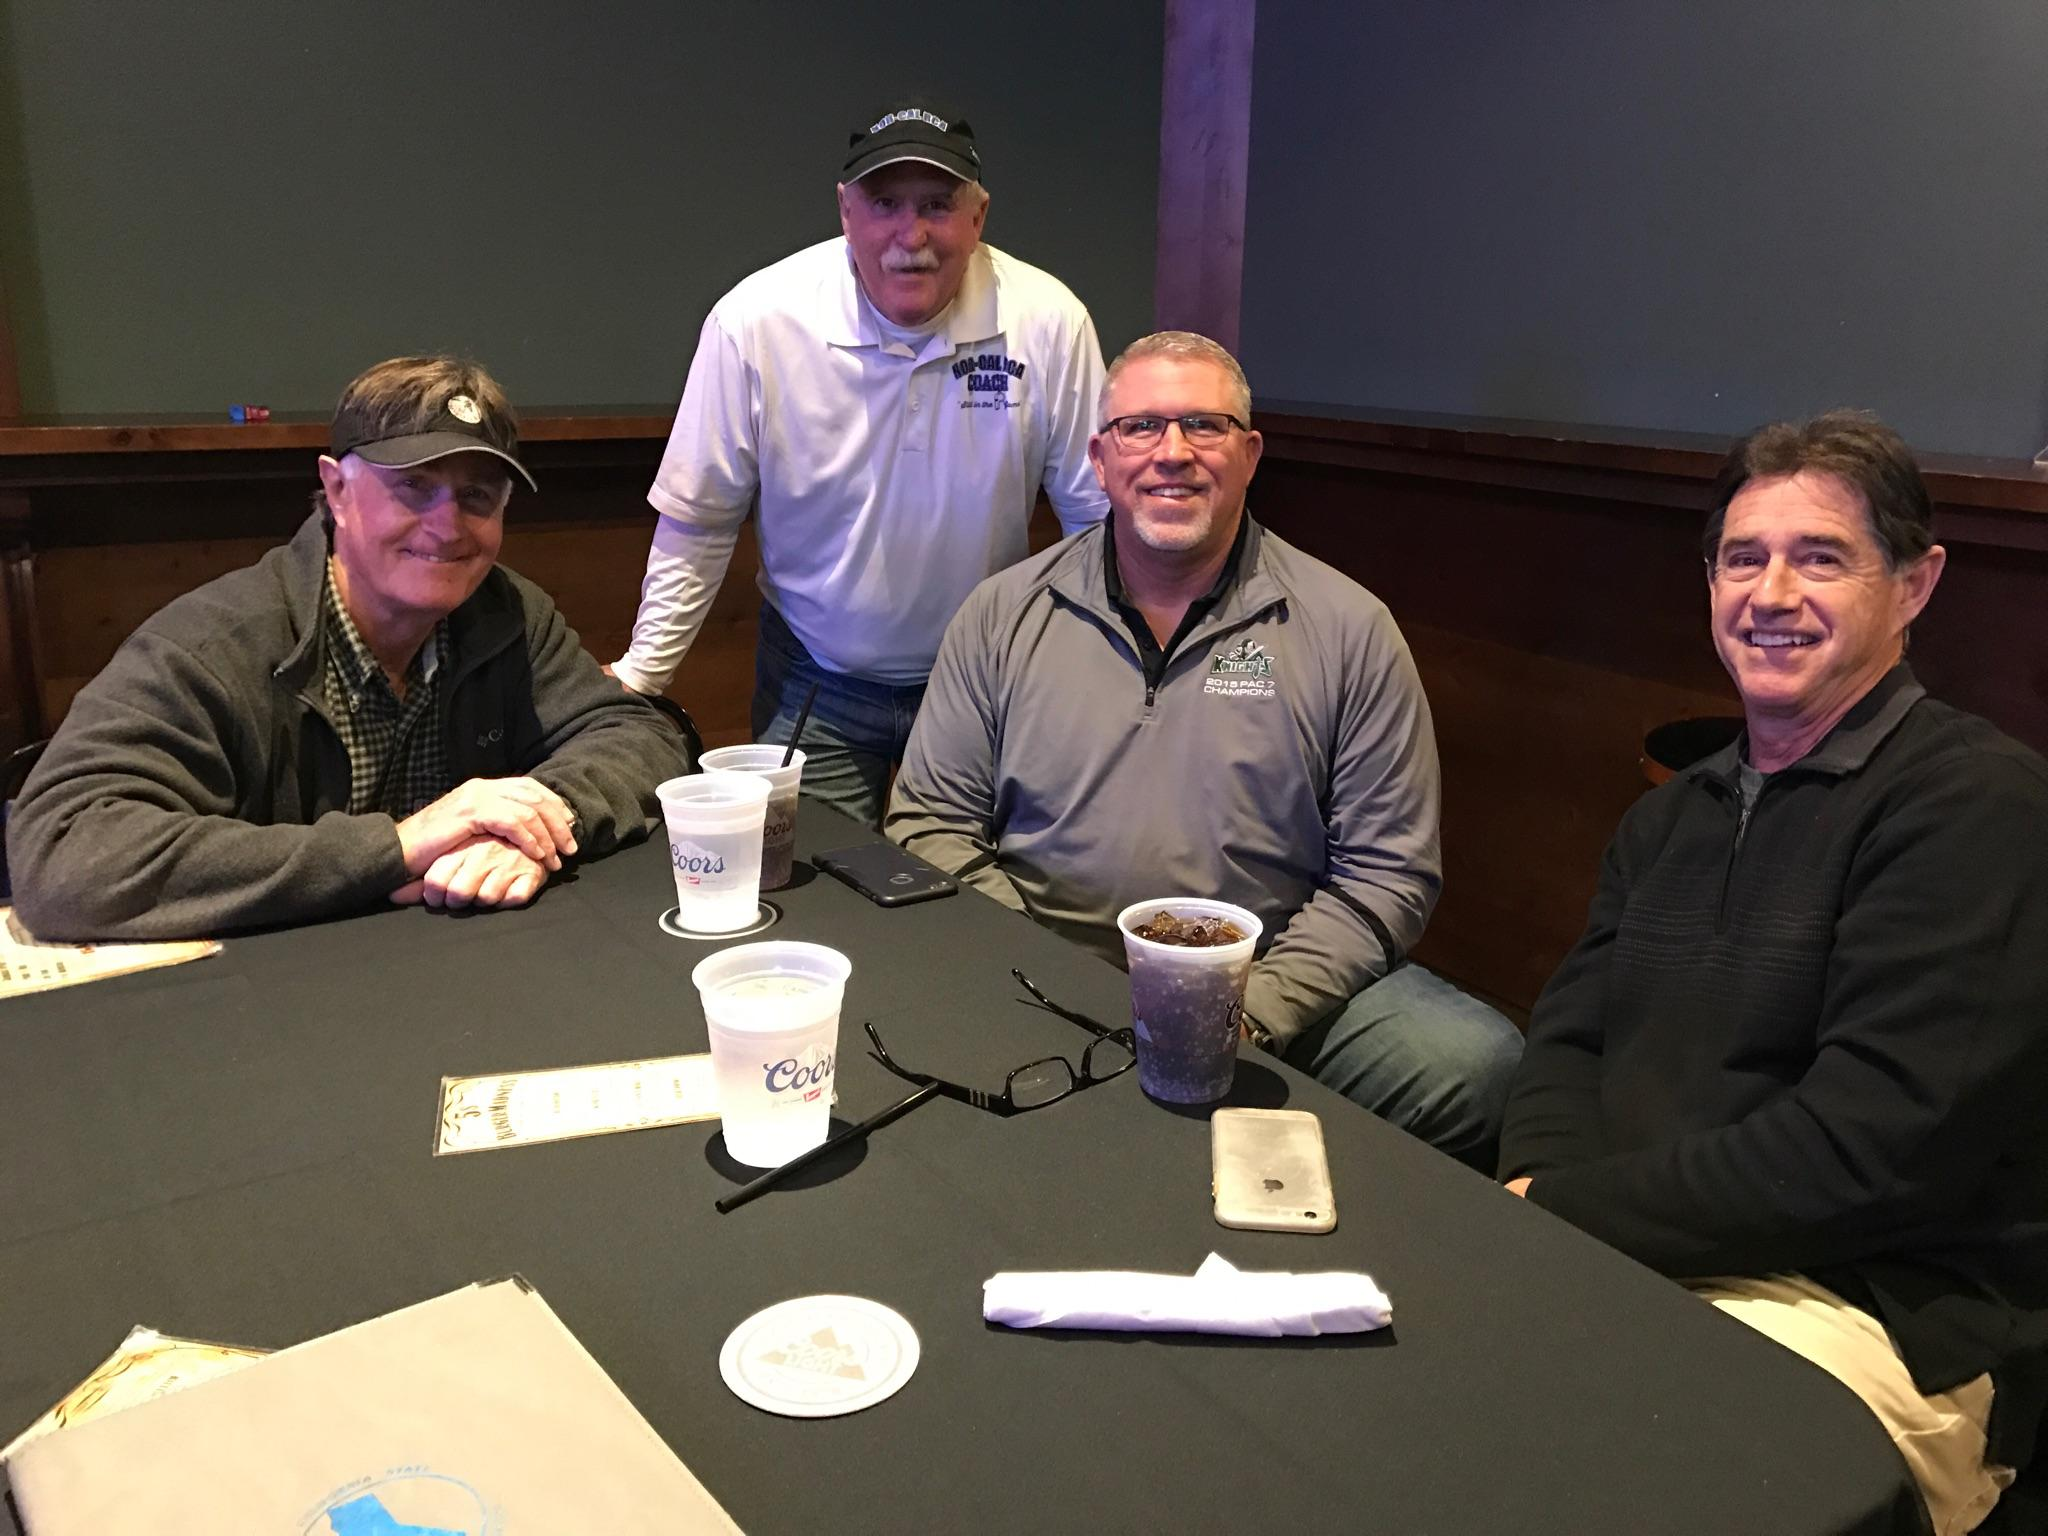 Left to right: Mike Moynahan, Lon McCasland, Craig Thompson, and Clay Erro